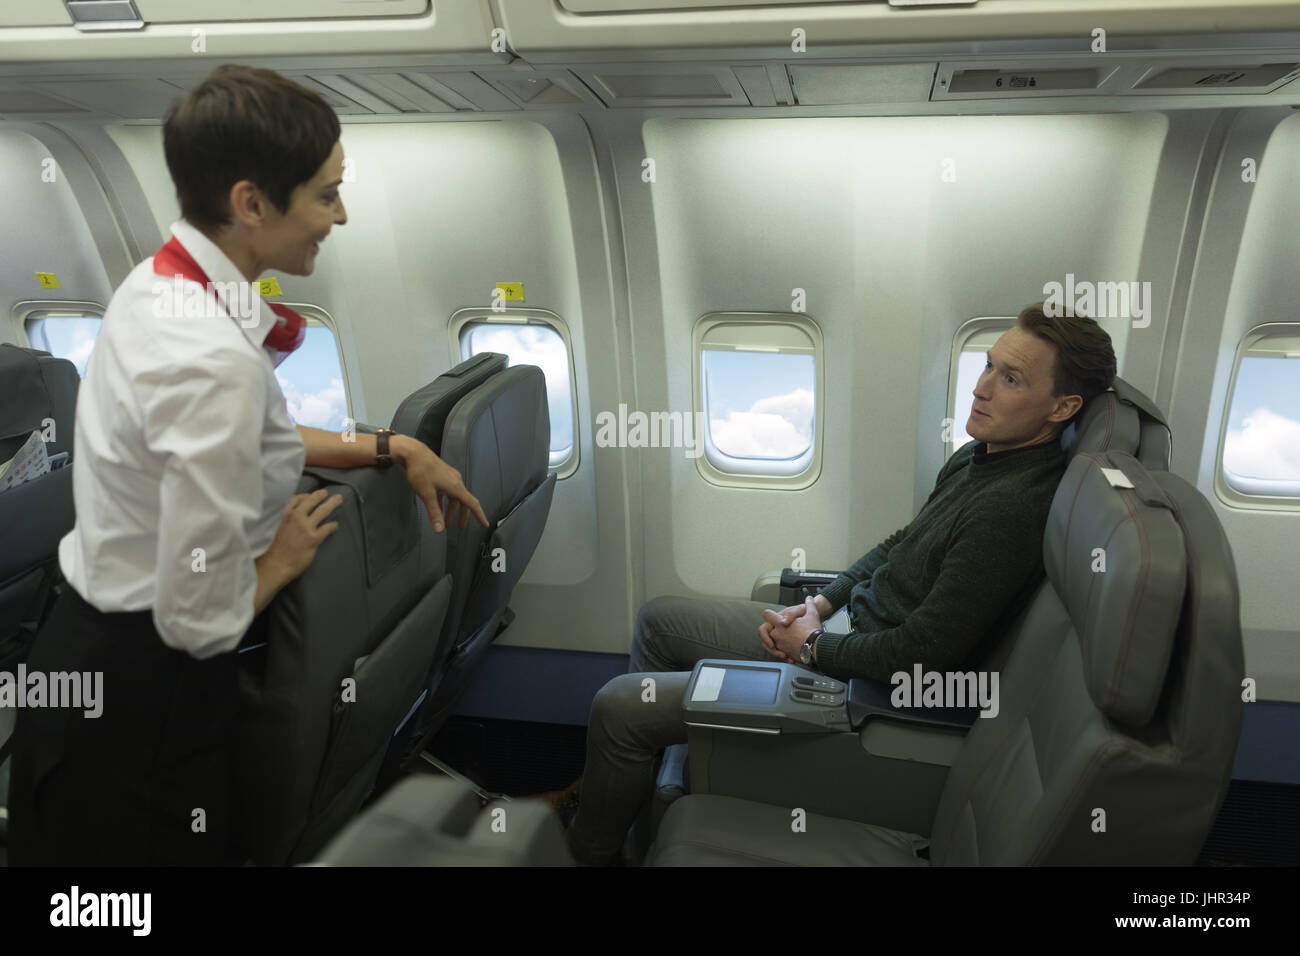 Air hostess interacting with passenger while travelling in an aircraft - Stock Image